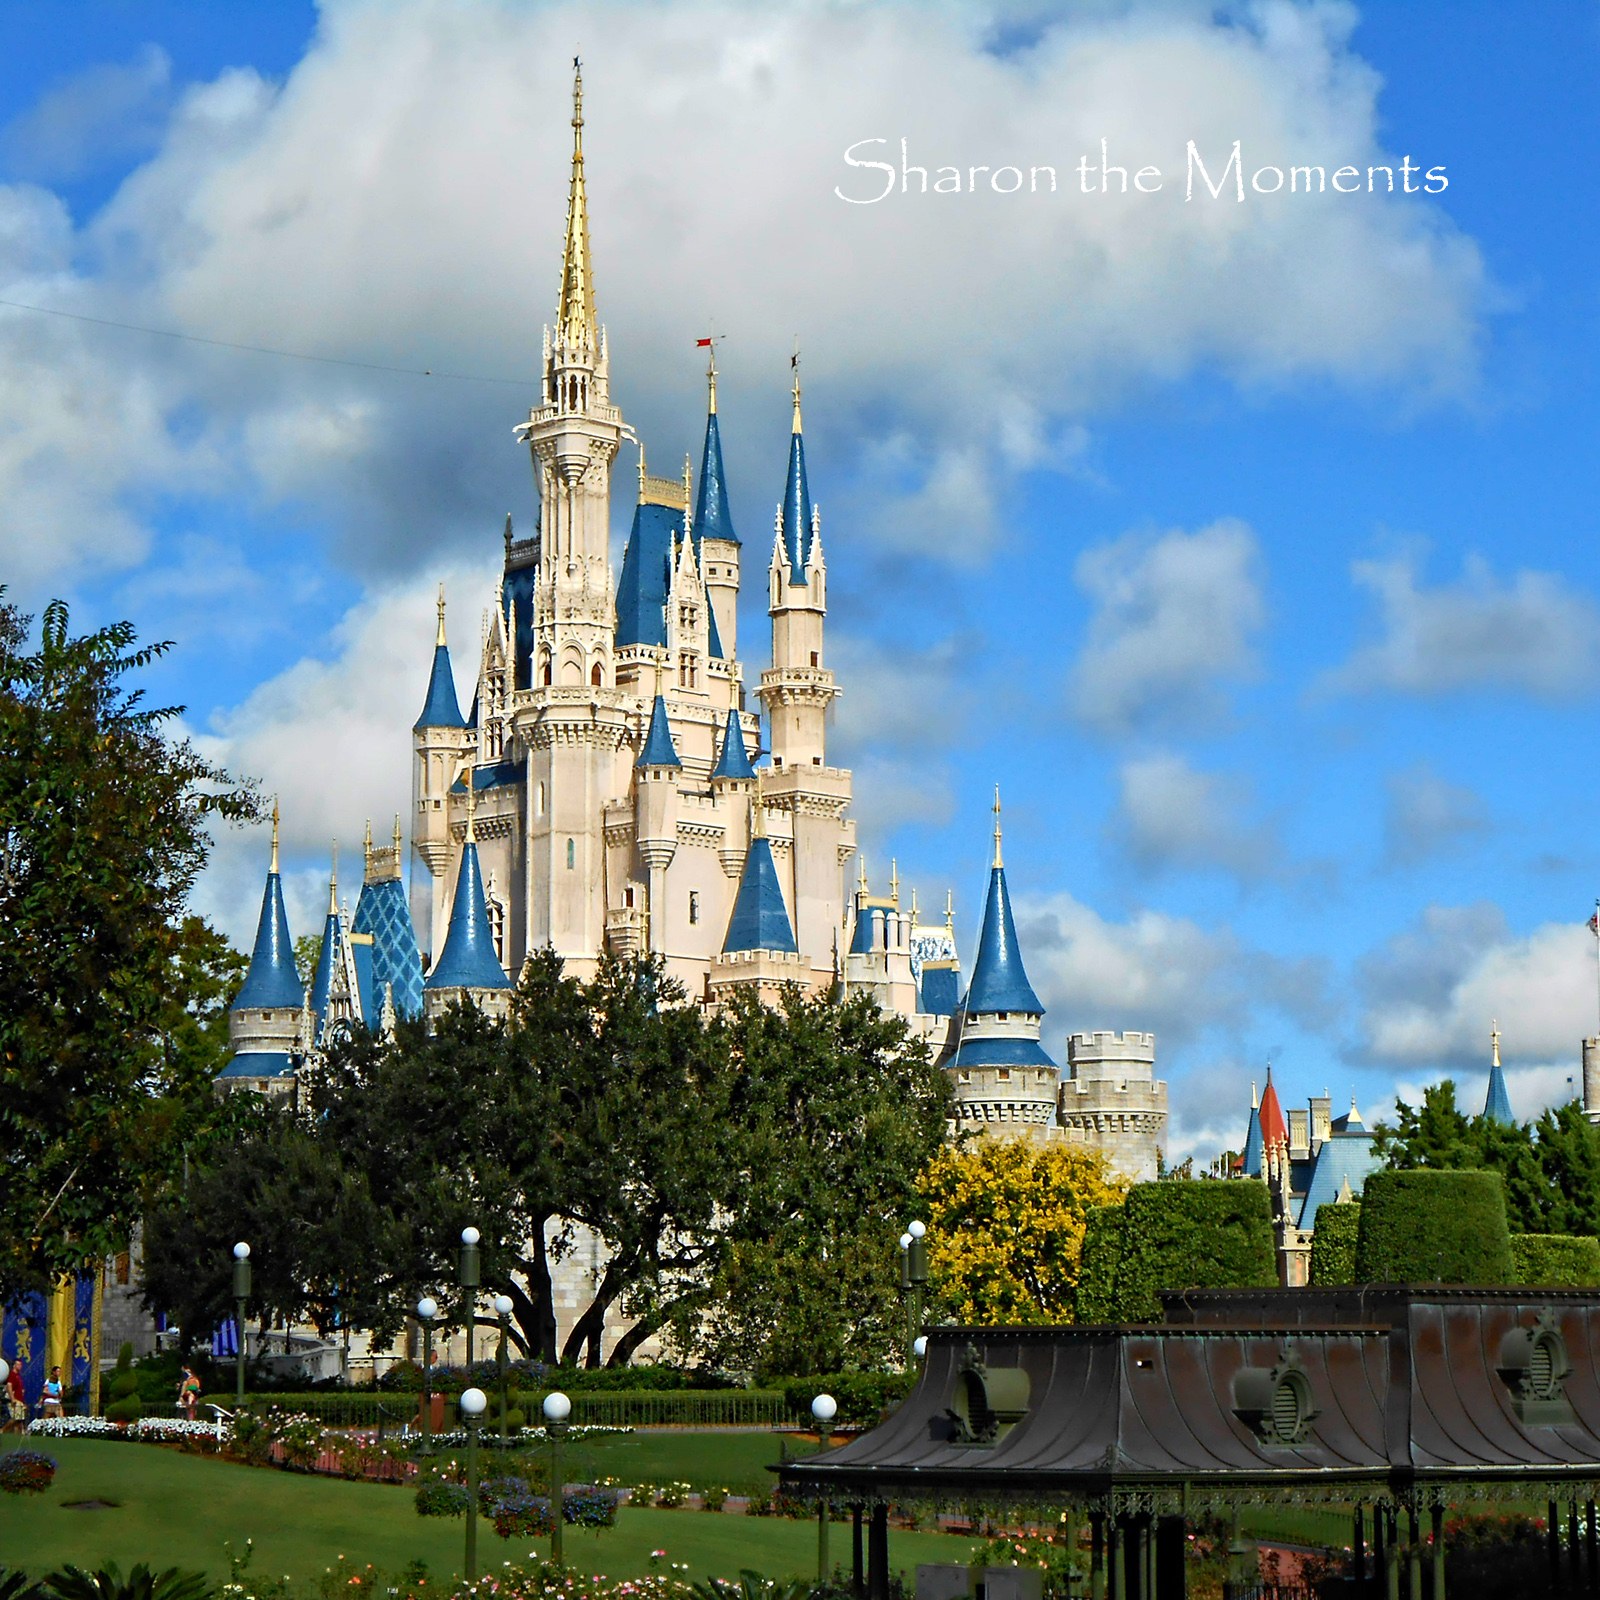 Our October visit to Walt Disney World The Magic Kingdom|Sharon the Moments Blog